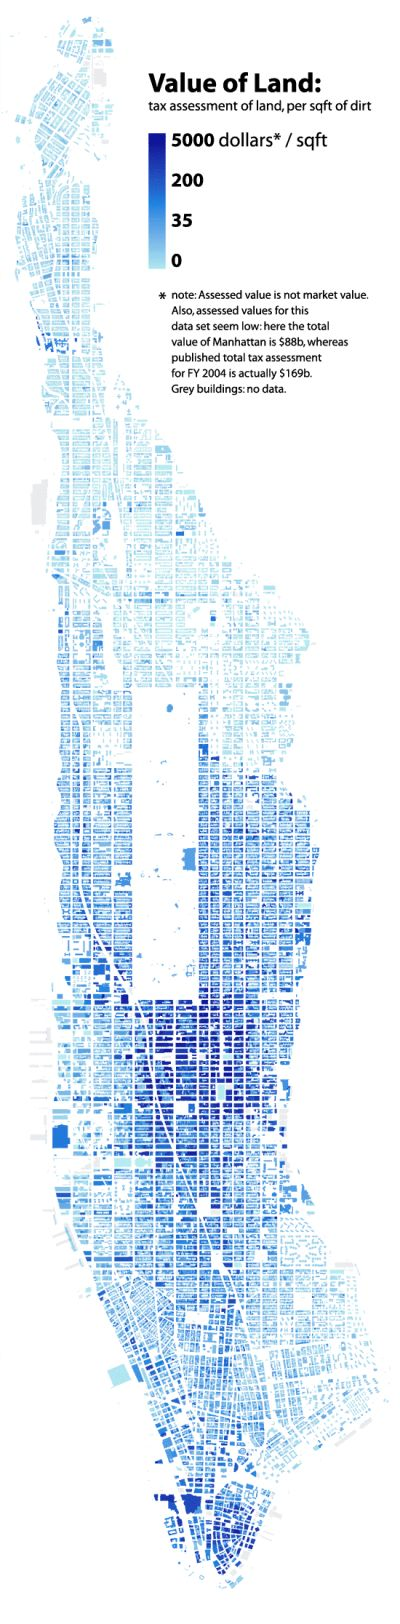 Manhattan Building Heights as Land Value - Blog About Infographics and Data Visualization - Cool Infographics